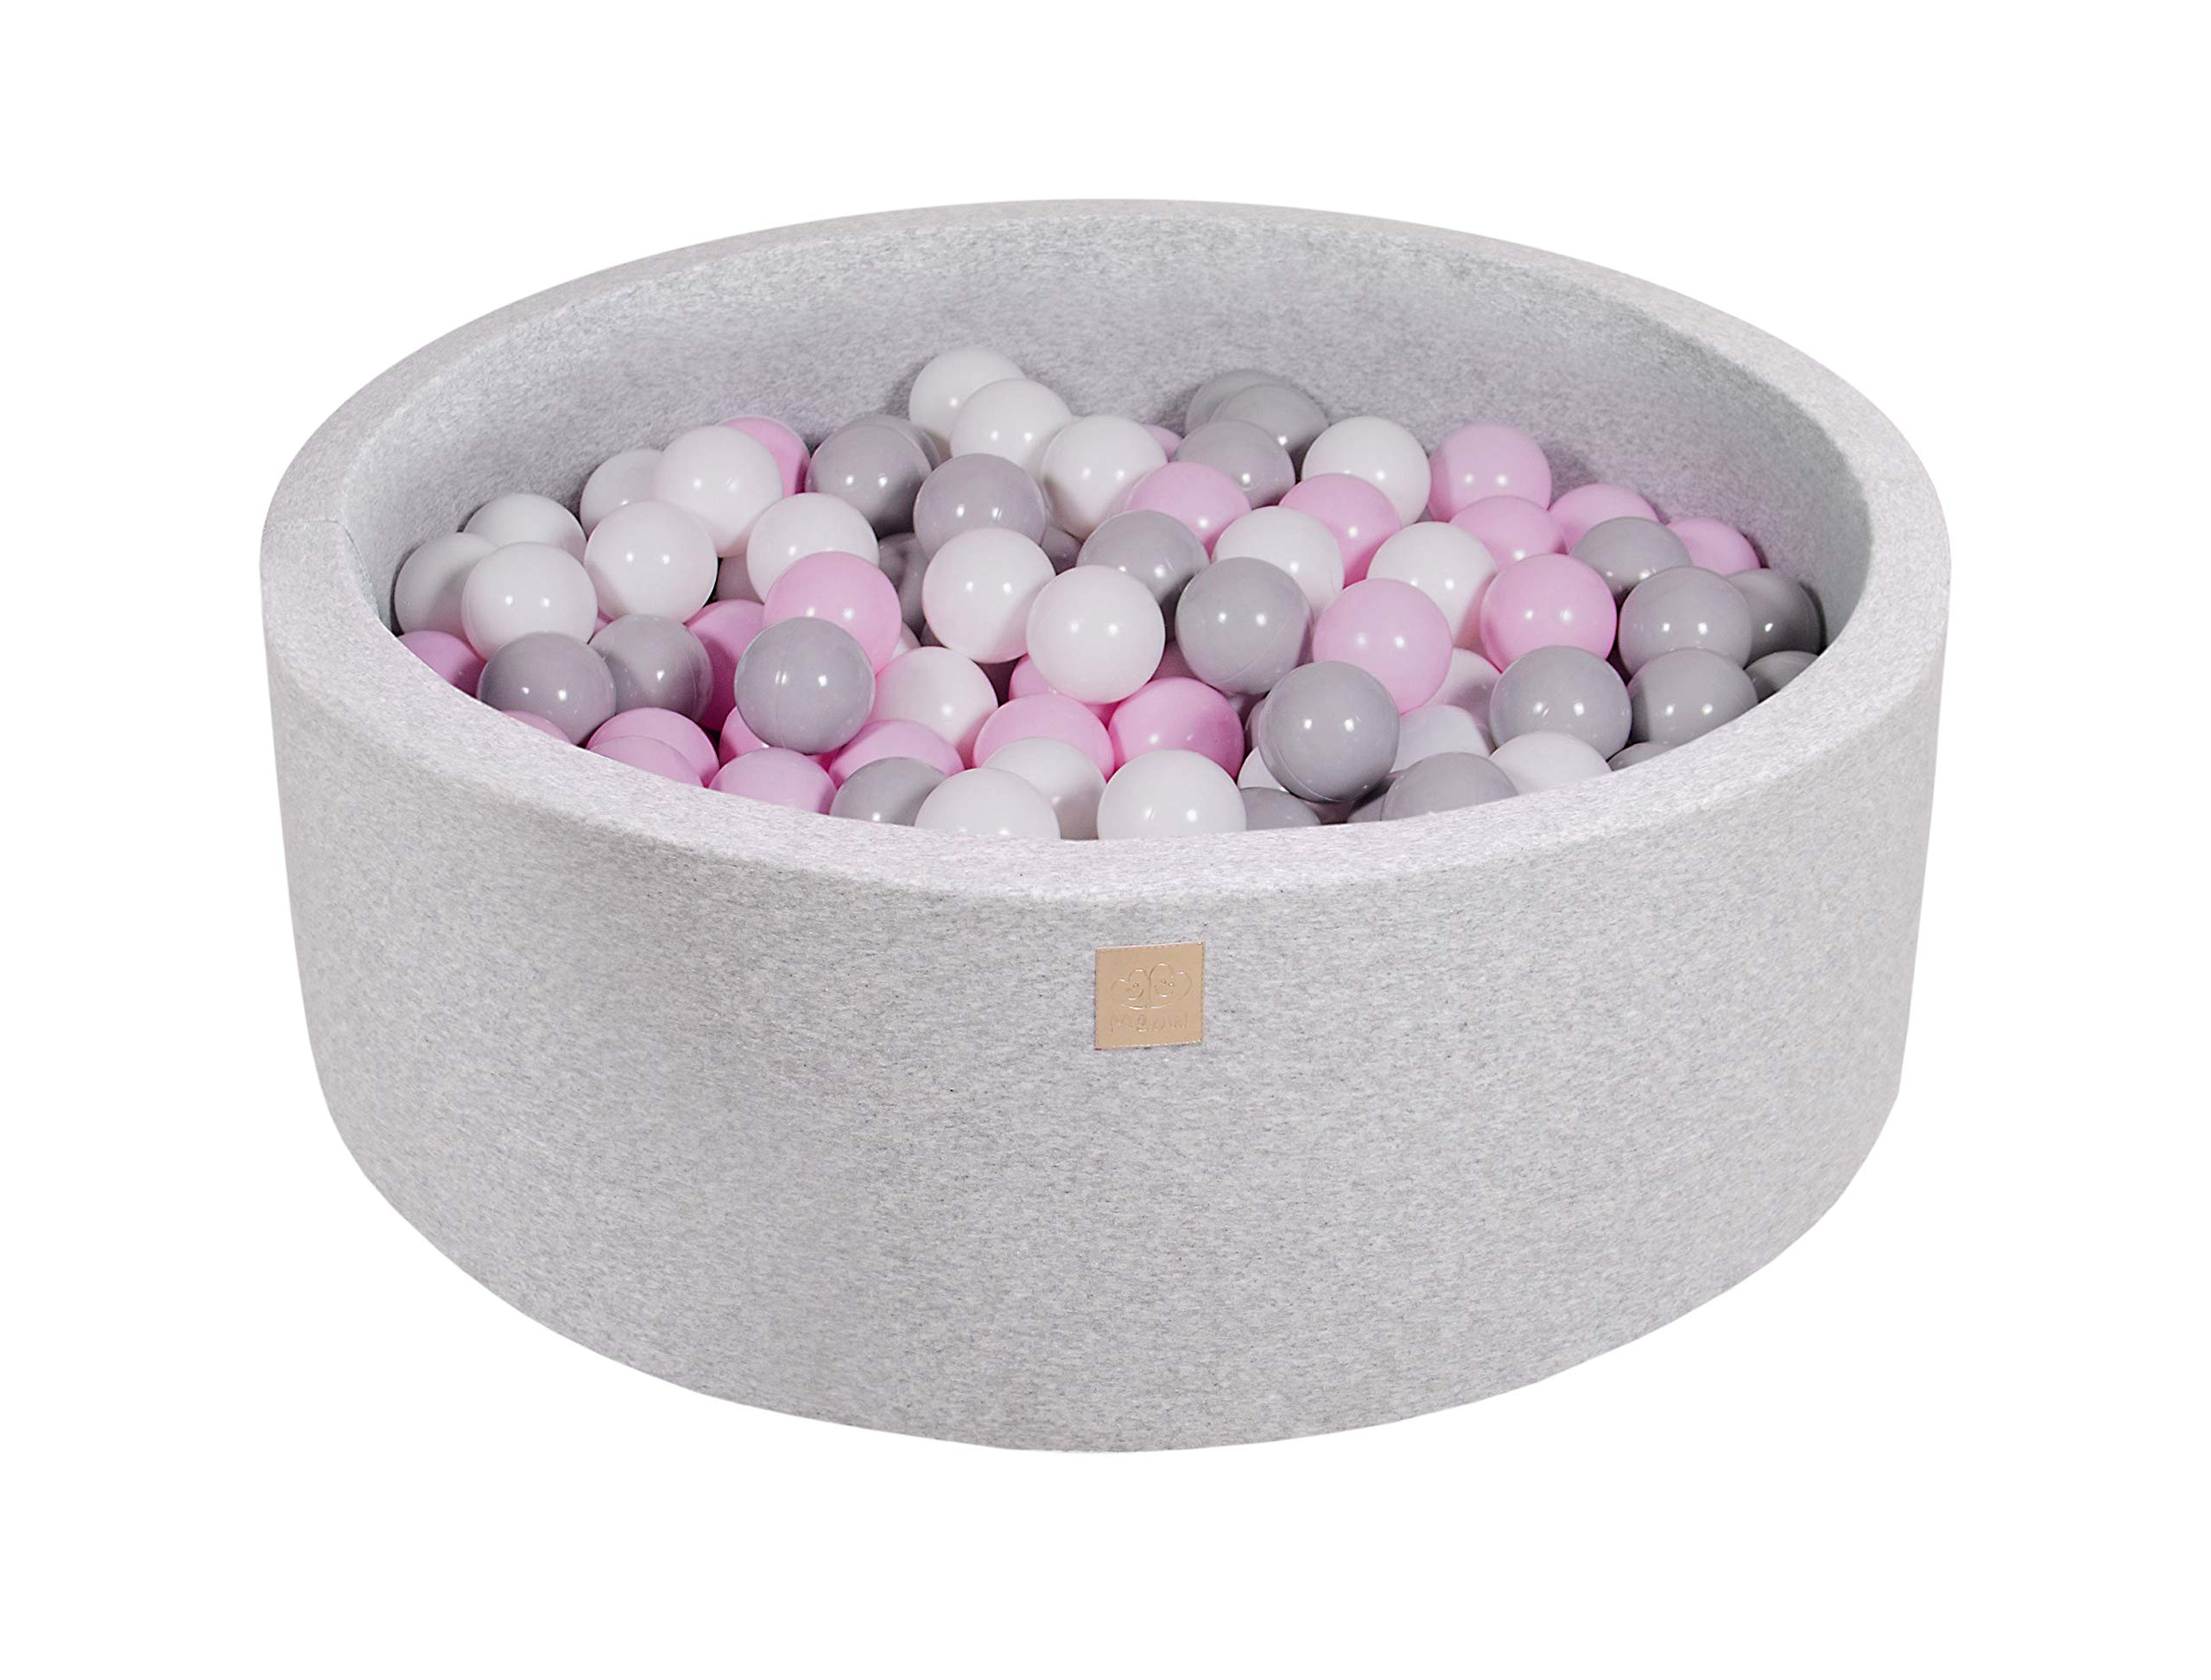 MEOWBABY 35 x 11.5 in /200 Balls Included ∅ 2.75in Foam Ball Pit for Baby Kids Soft Round Ball Pool Children Toddler Playpen Made in EU Light Grey: Pastel Pink/Grey/White